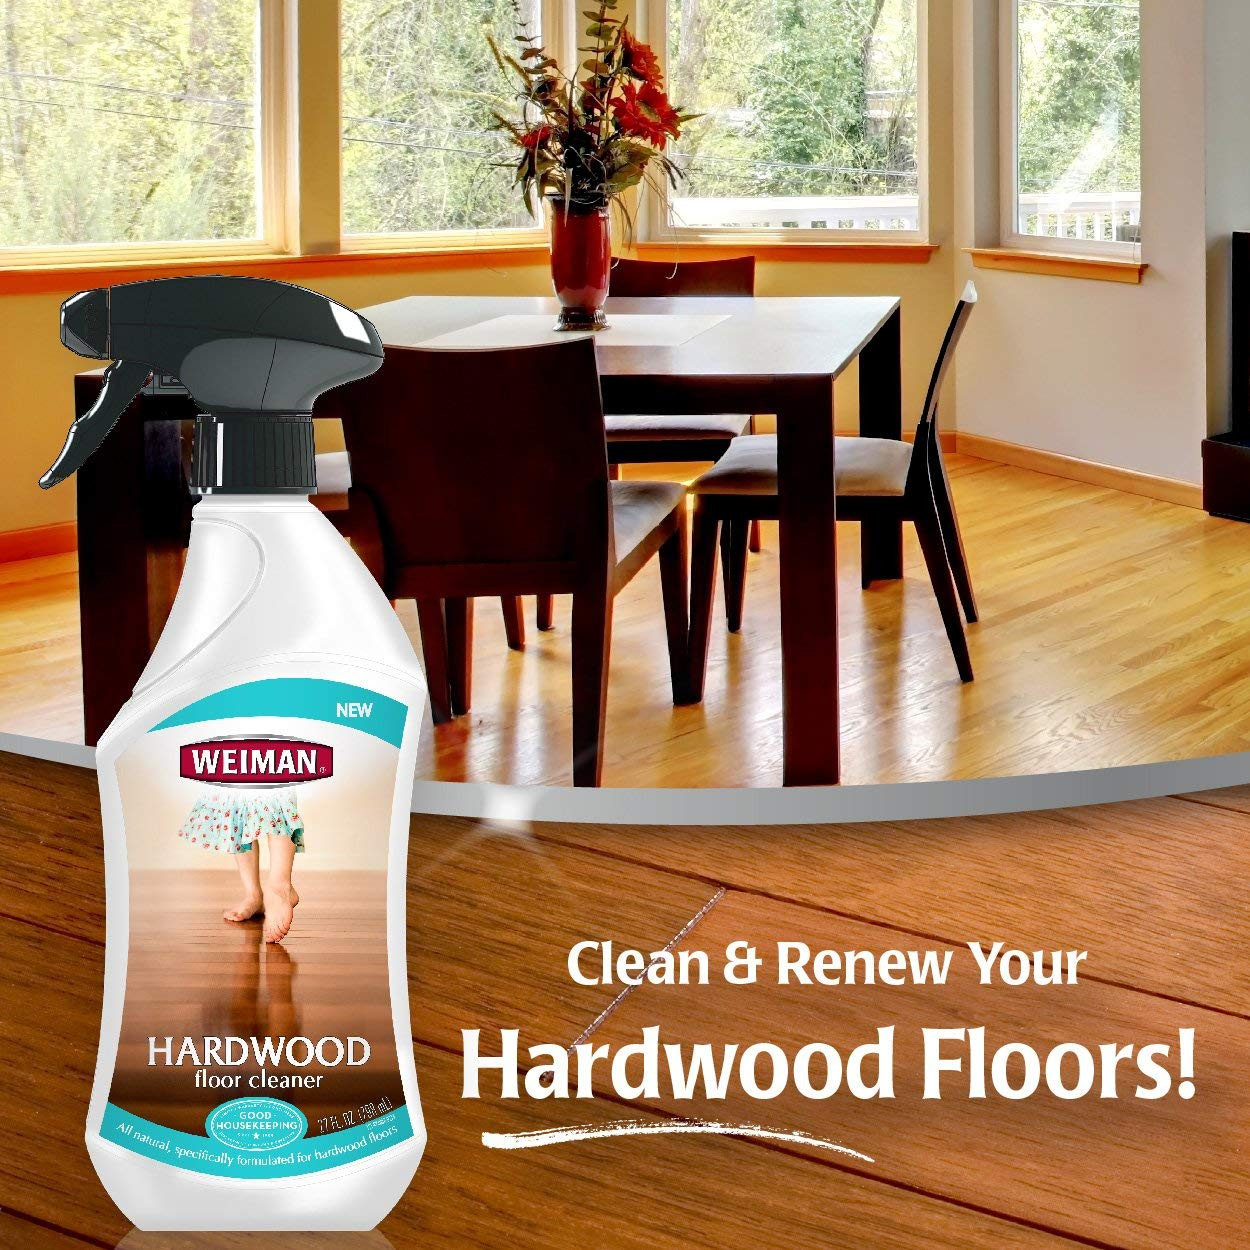 hardwood floor care vinegar of amazon com weiman hardwood floor cleaner surface safe no harsh regarding amazon com weiman hardwood floor cleaner surface safe no harsh scent safe for use around kids and pets residue free 27 oz trigger home kitchen